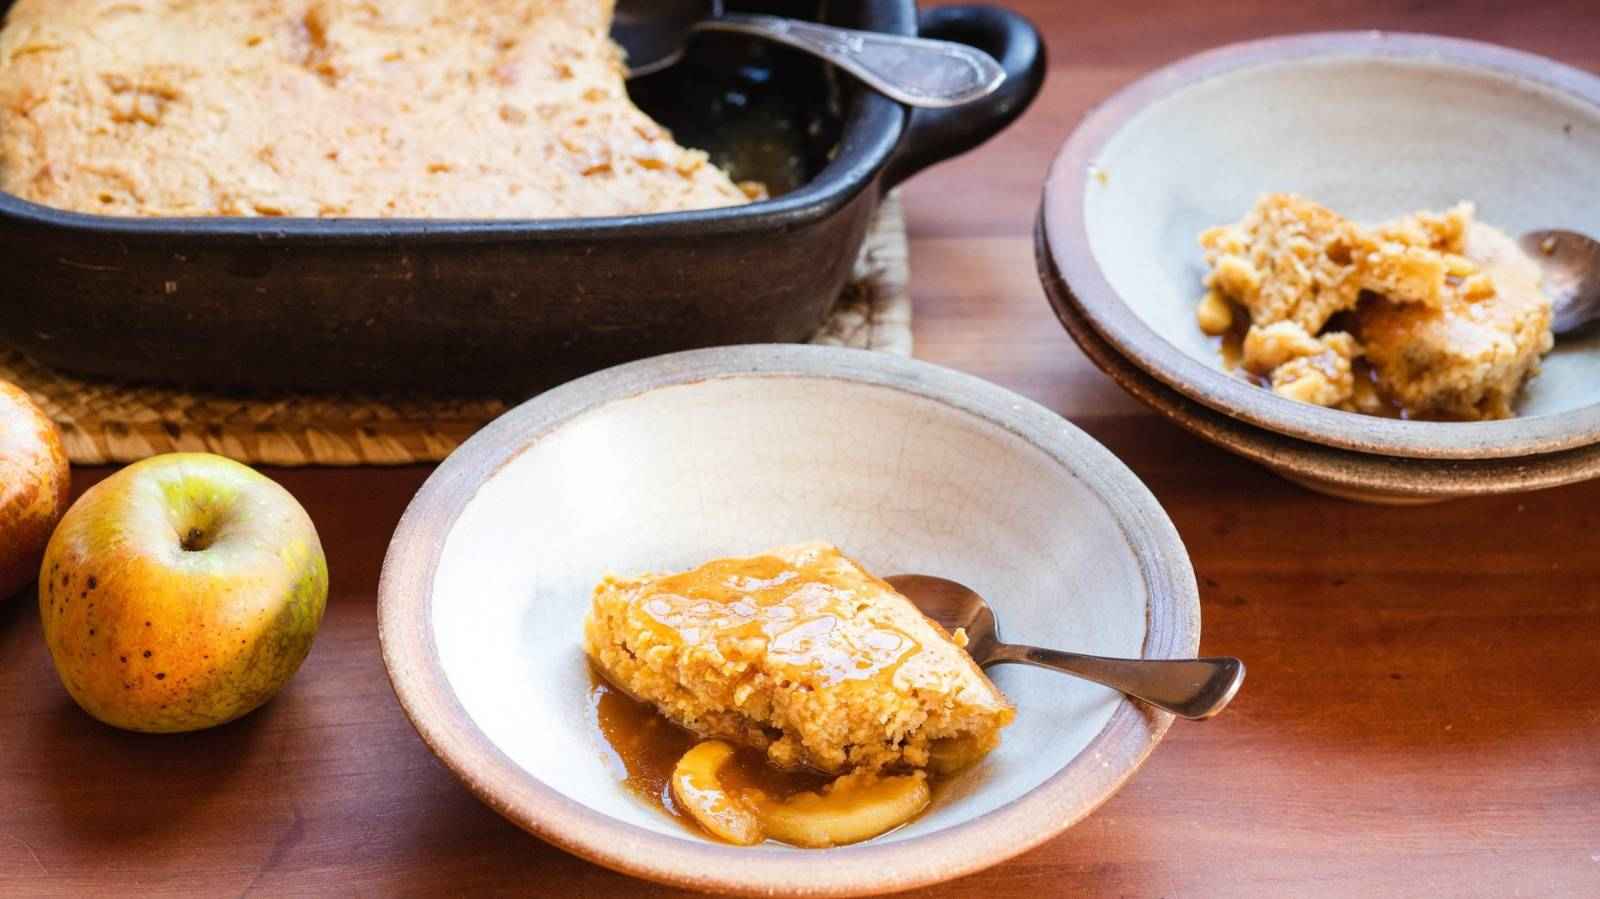 Butterscotch and apple self-saucing pudding